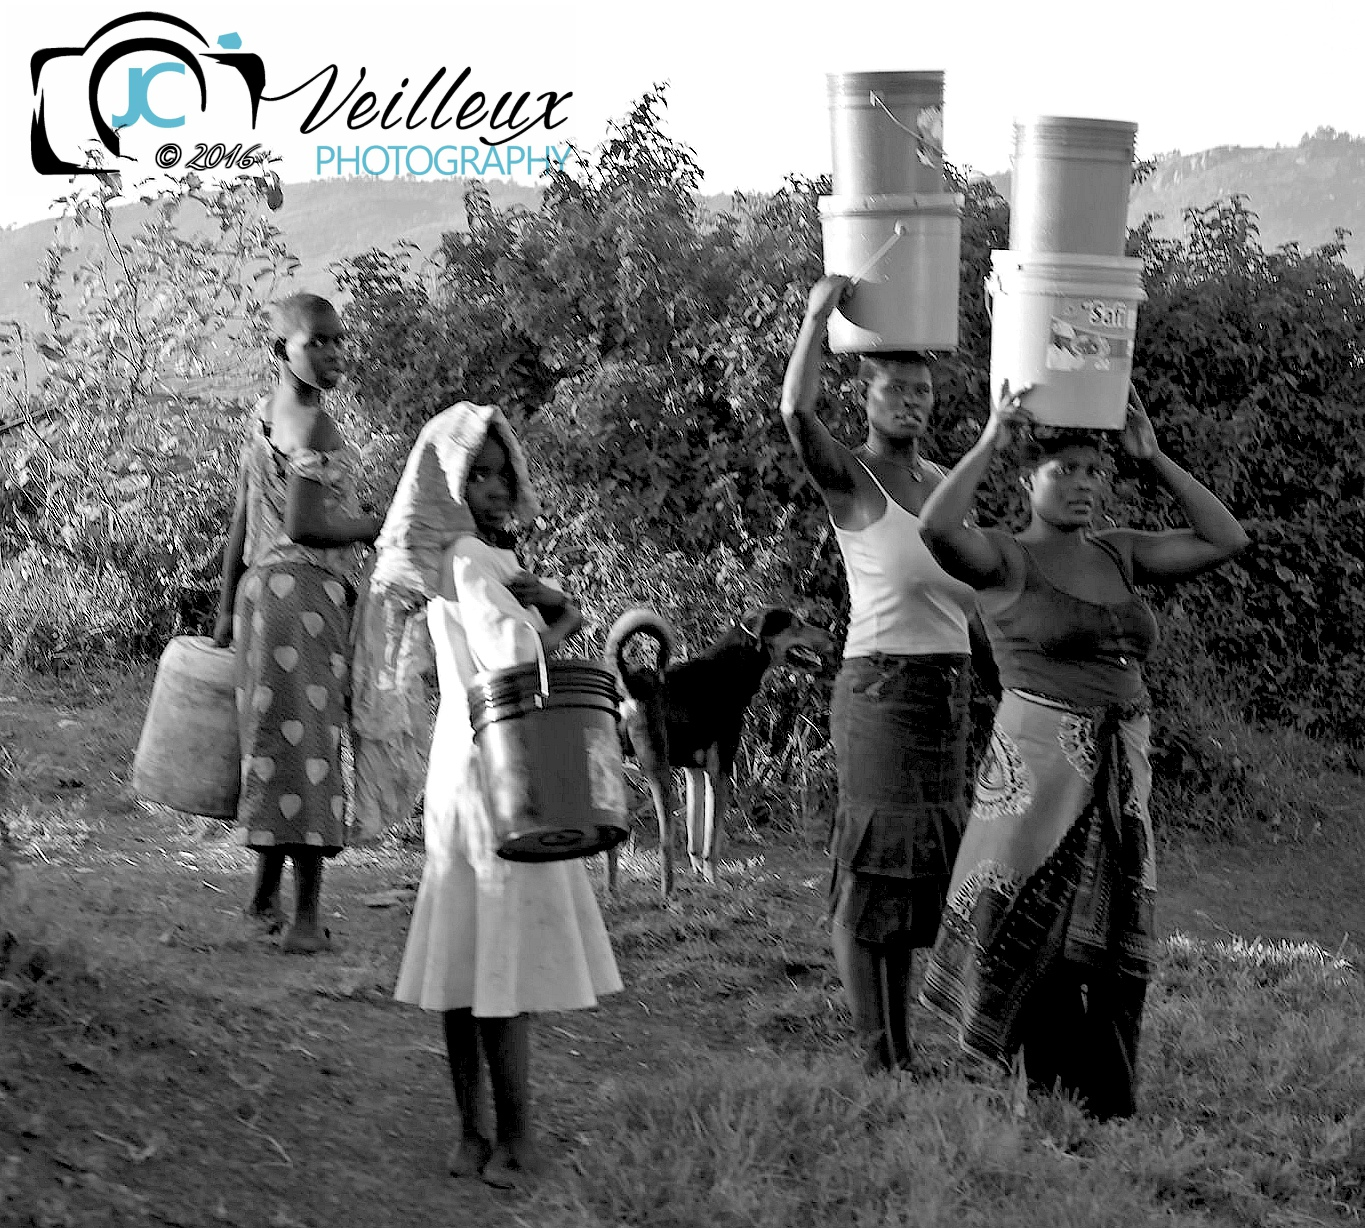 Women Hauling Water